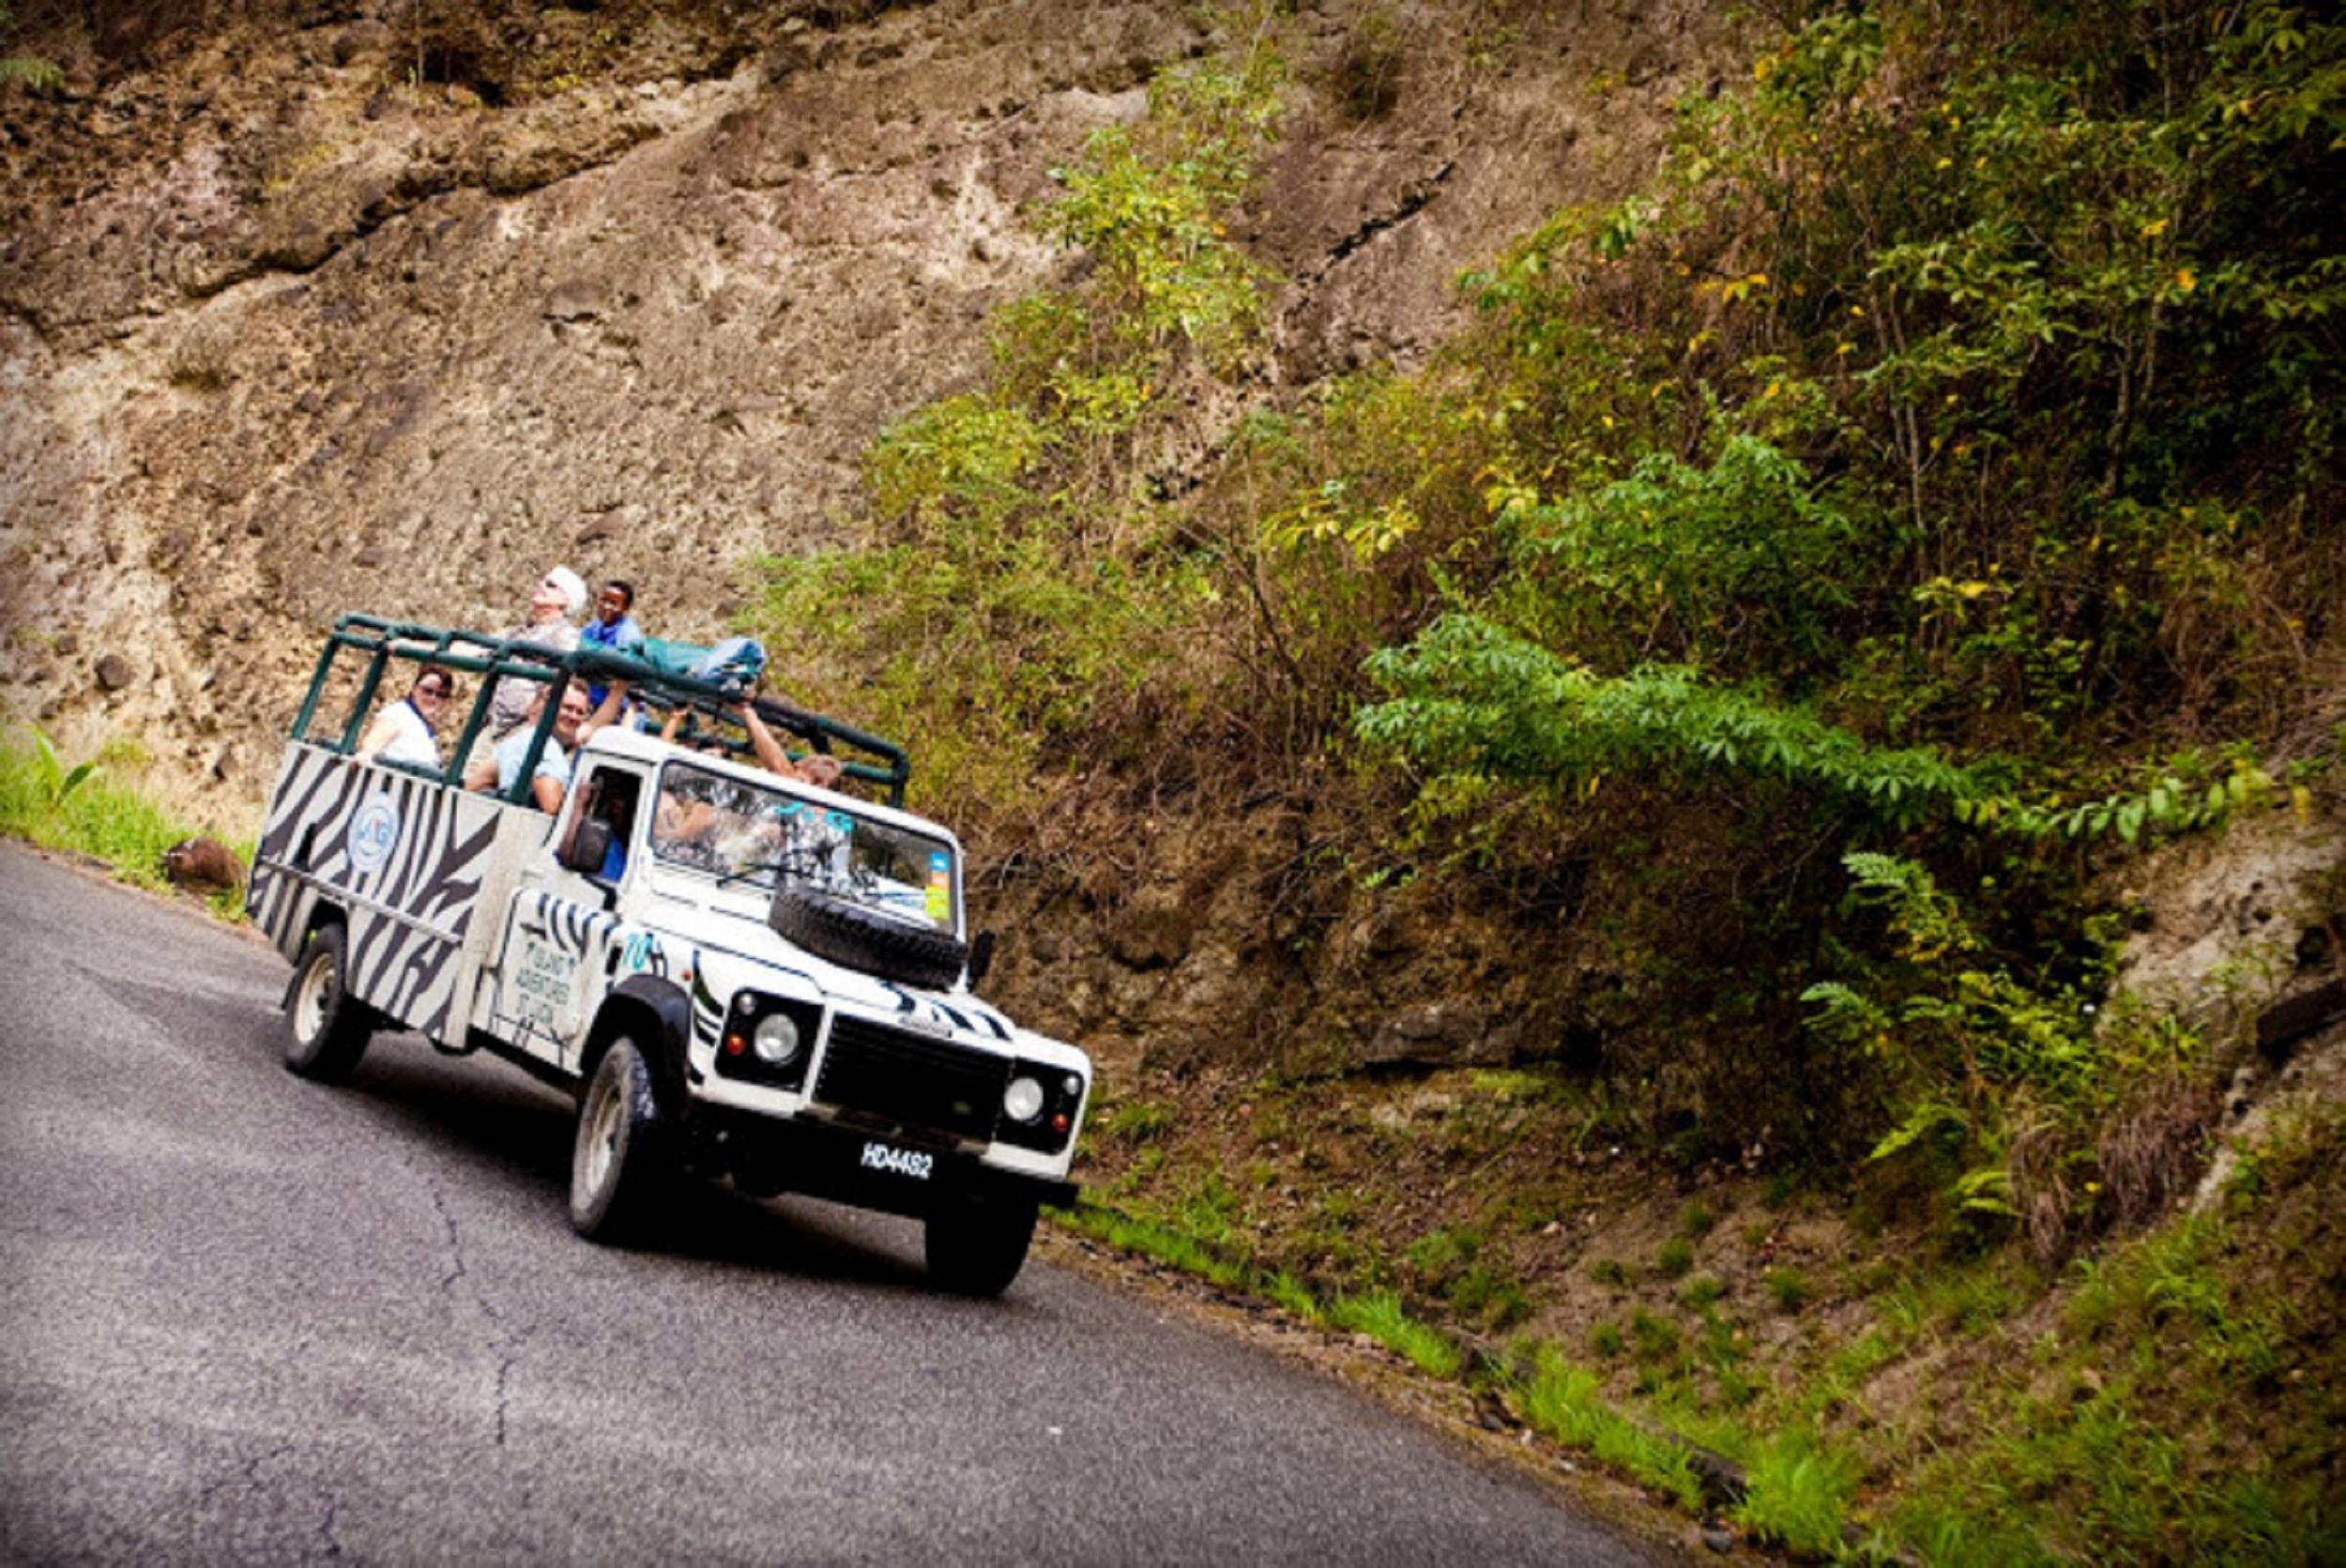 caribbean island adventure & sightseeing tours in st. lucia - island